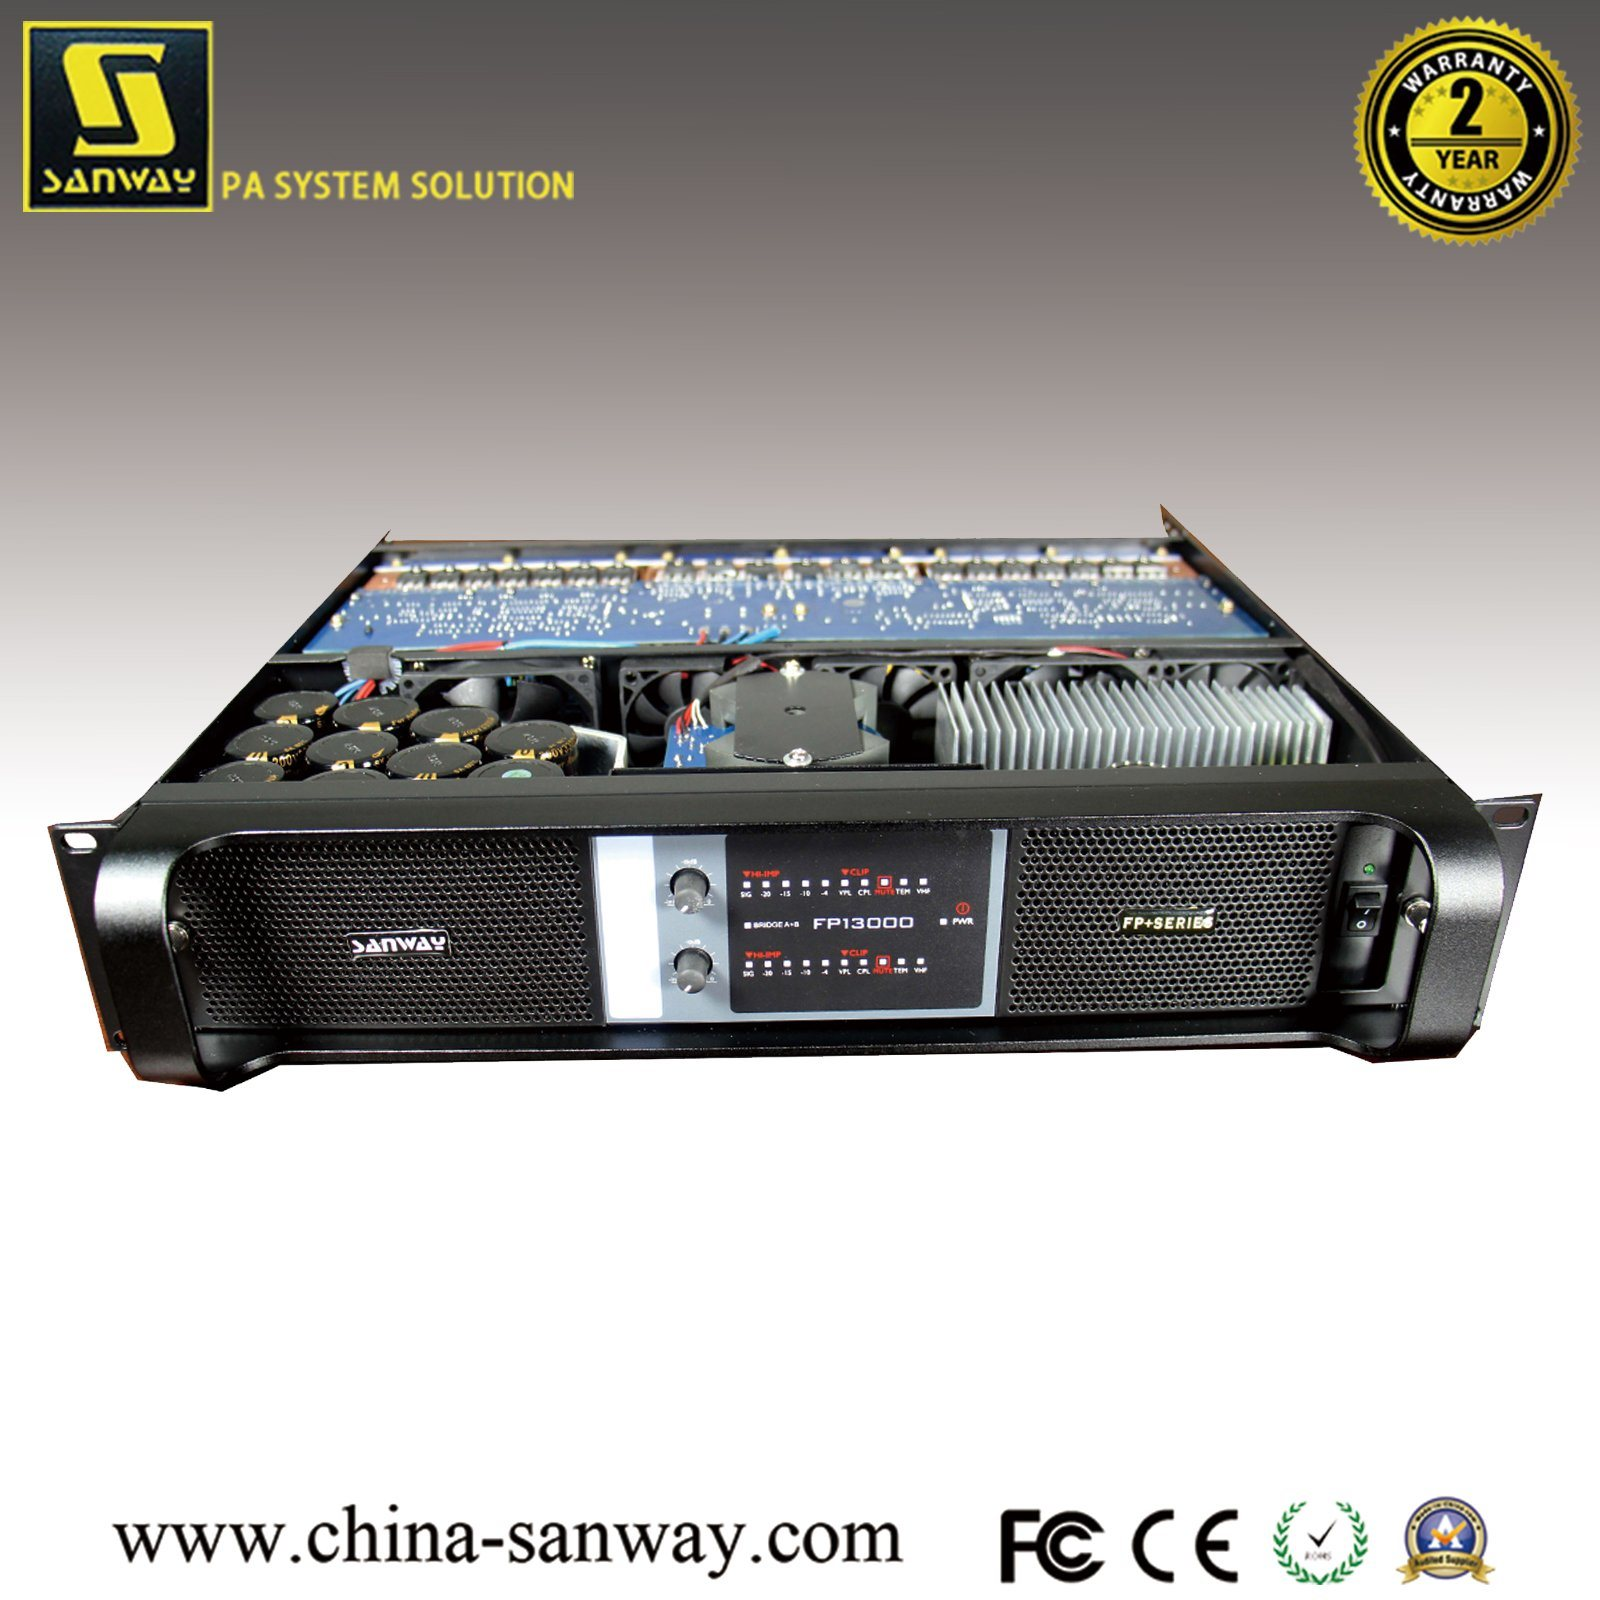 China Sanway Fp13000 Pro Audio Stereo Power Amplifier Pa Speakers System Linear Amps Amplifiers